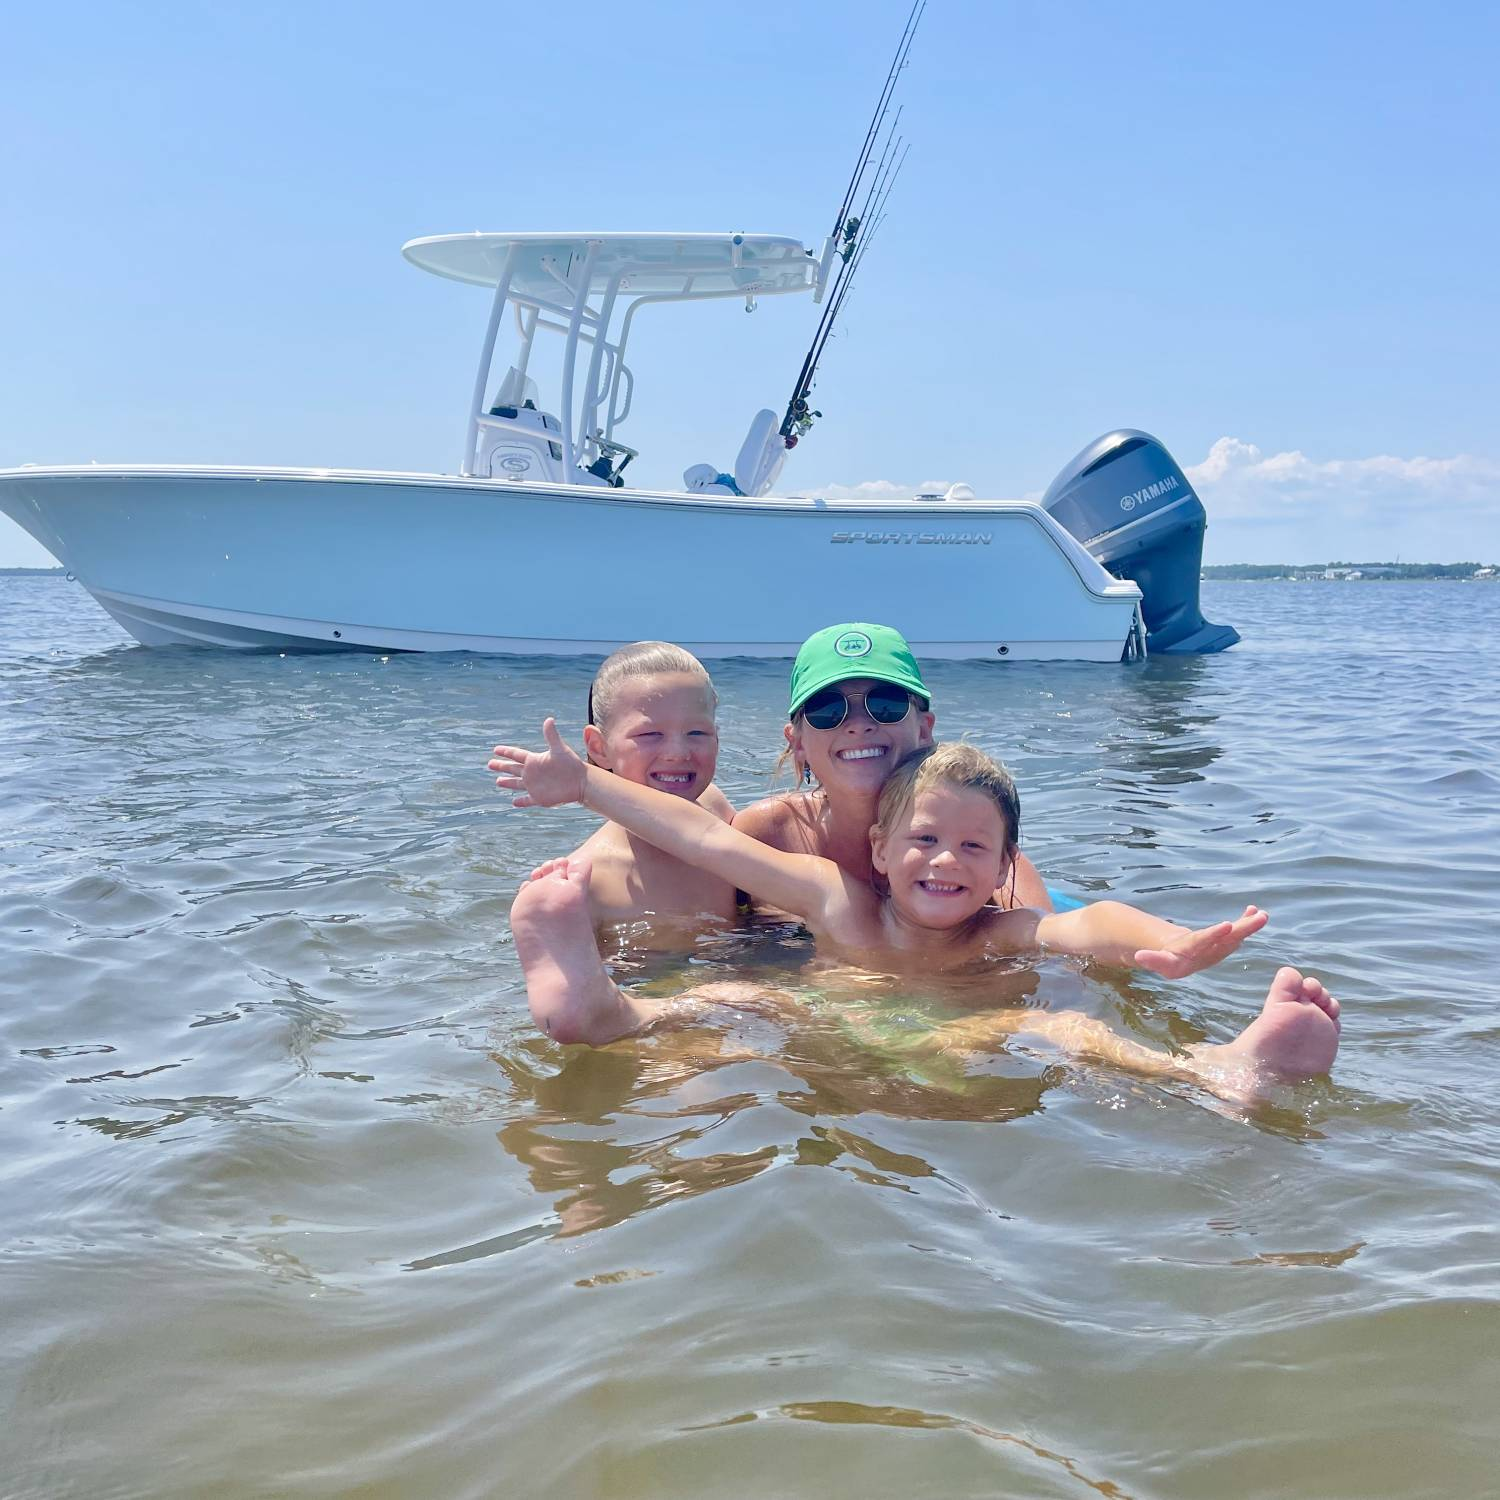 Title: Sportsman with family - On board their Sportsman Heritage 231 Center Console - Location: Bald head island, NC. Participating in the Photo Contest #SportsmanAugust2021